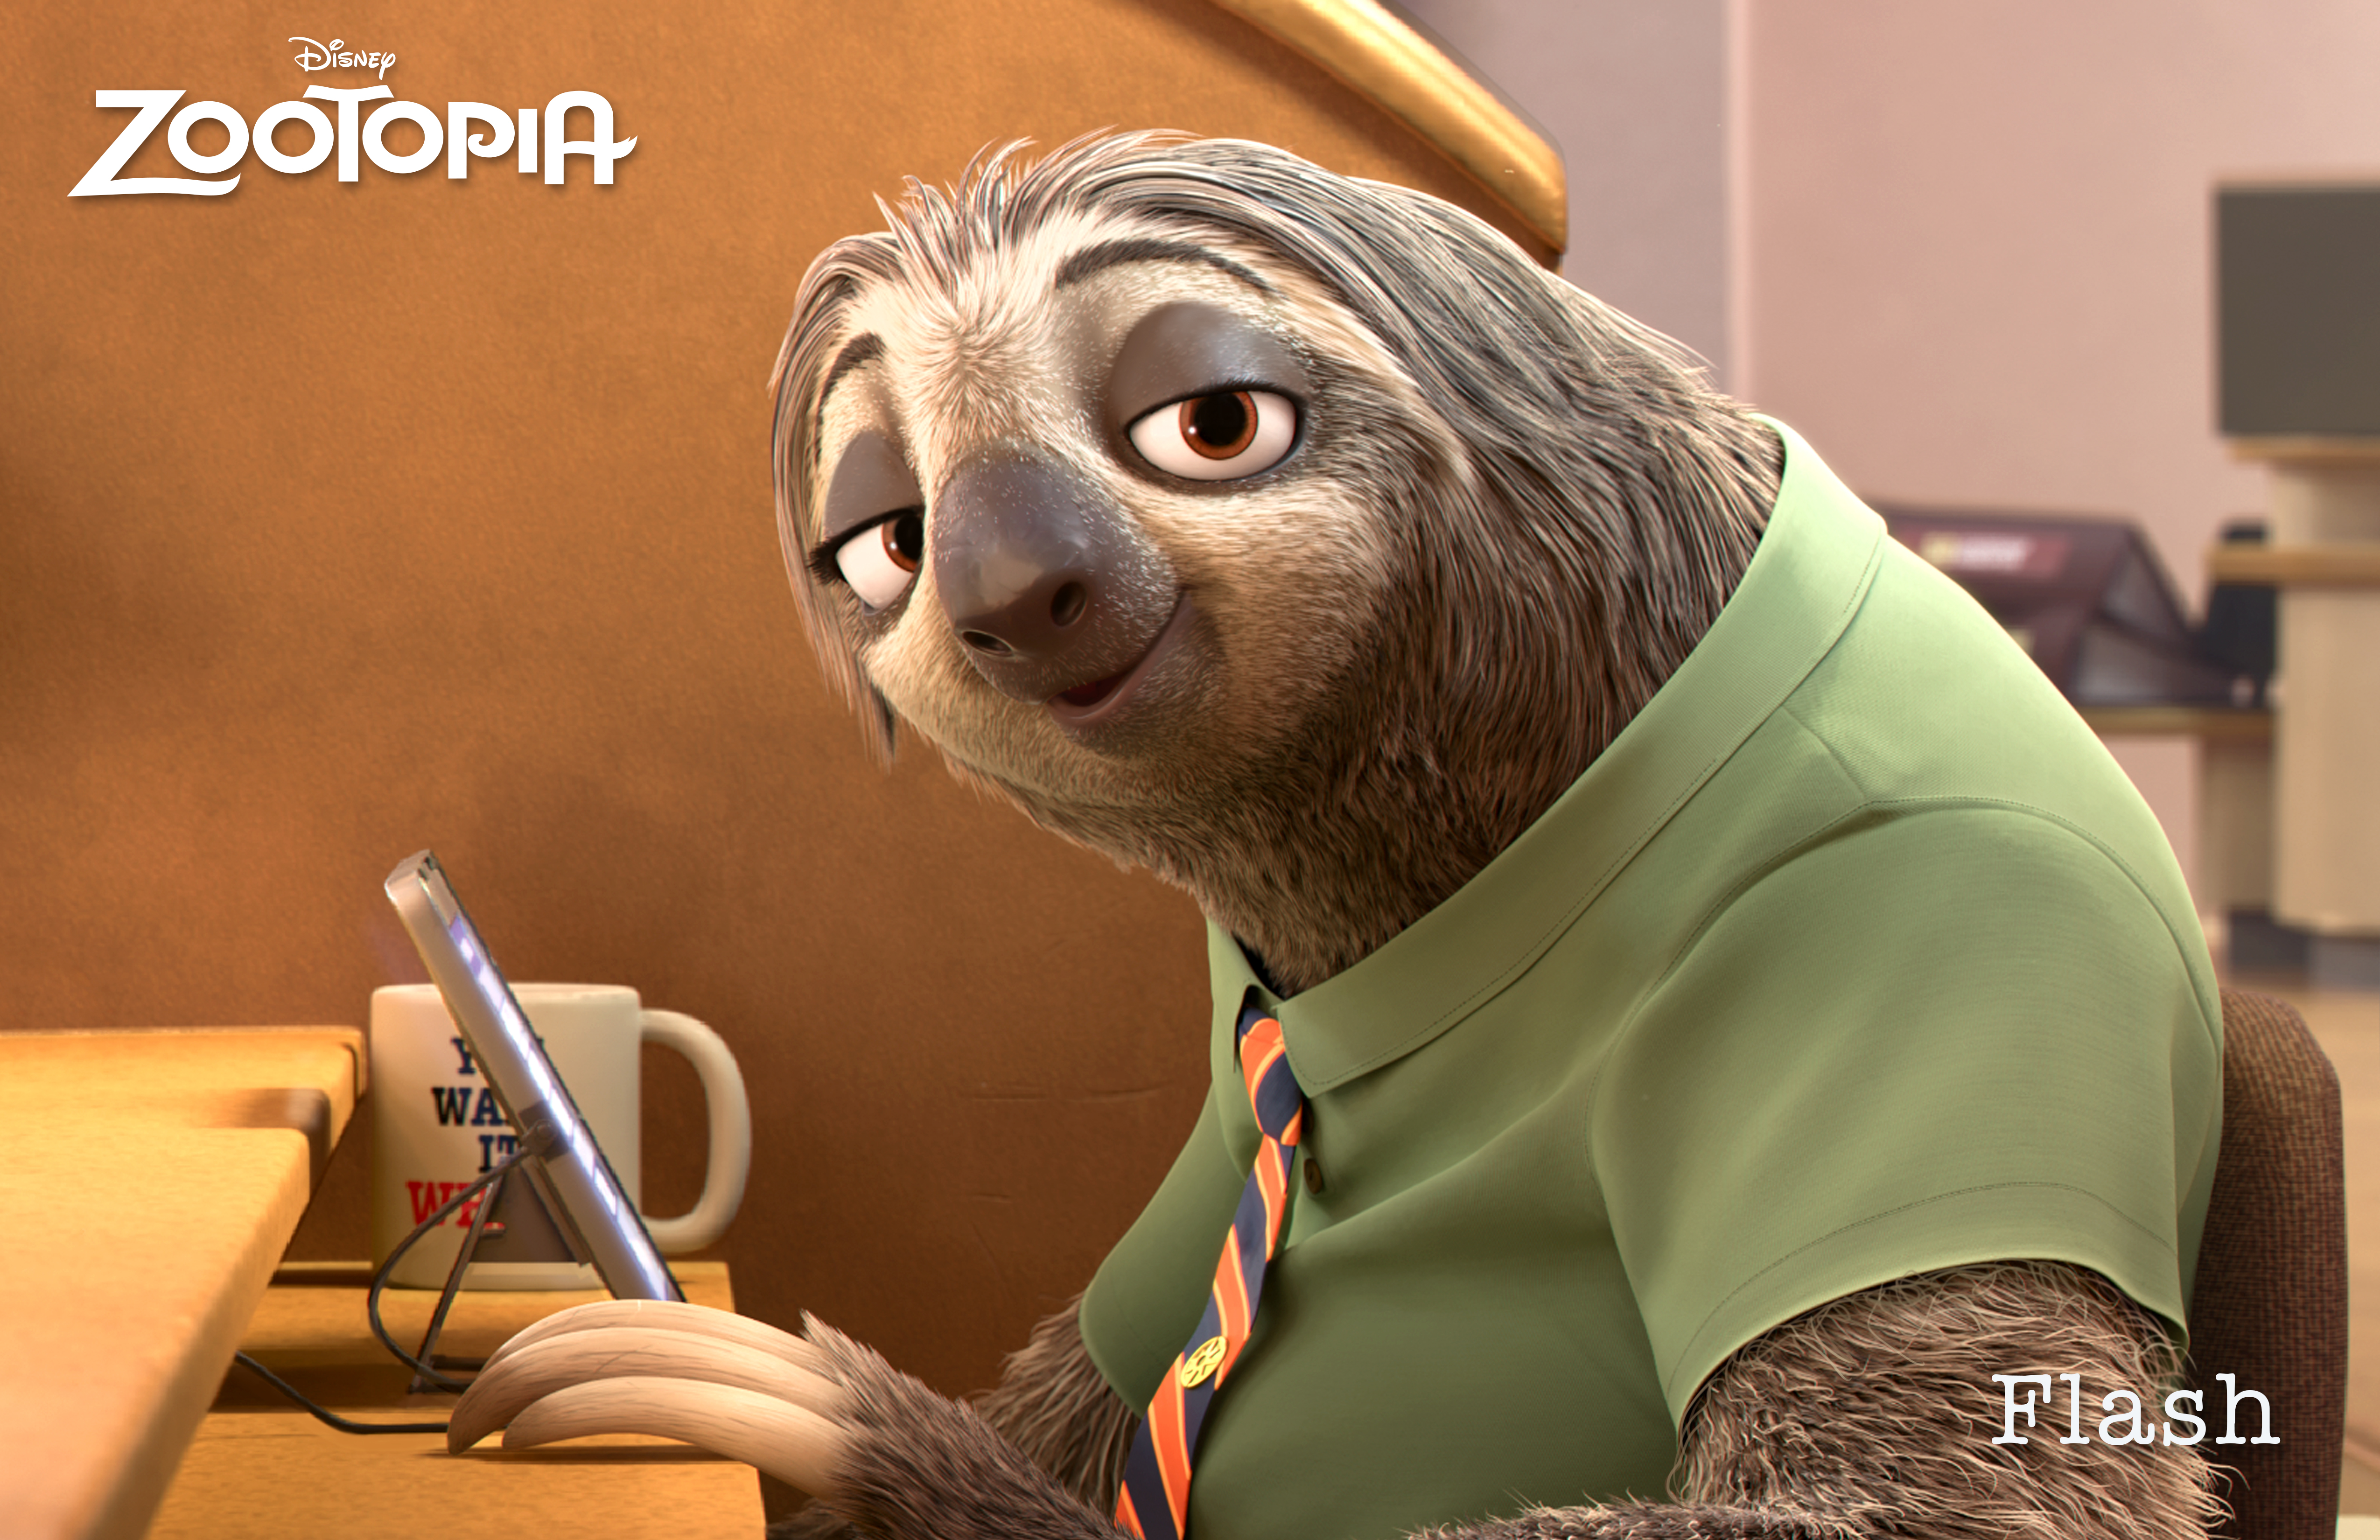 ZOOTOPIA – FLASH, the fastest sloth working at the DMV—the Department of Mammal Vehicles. ©2015 Disney. All Rights Reserved.